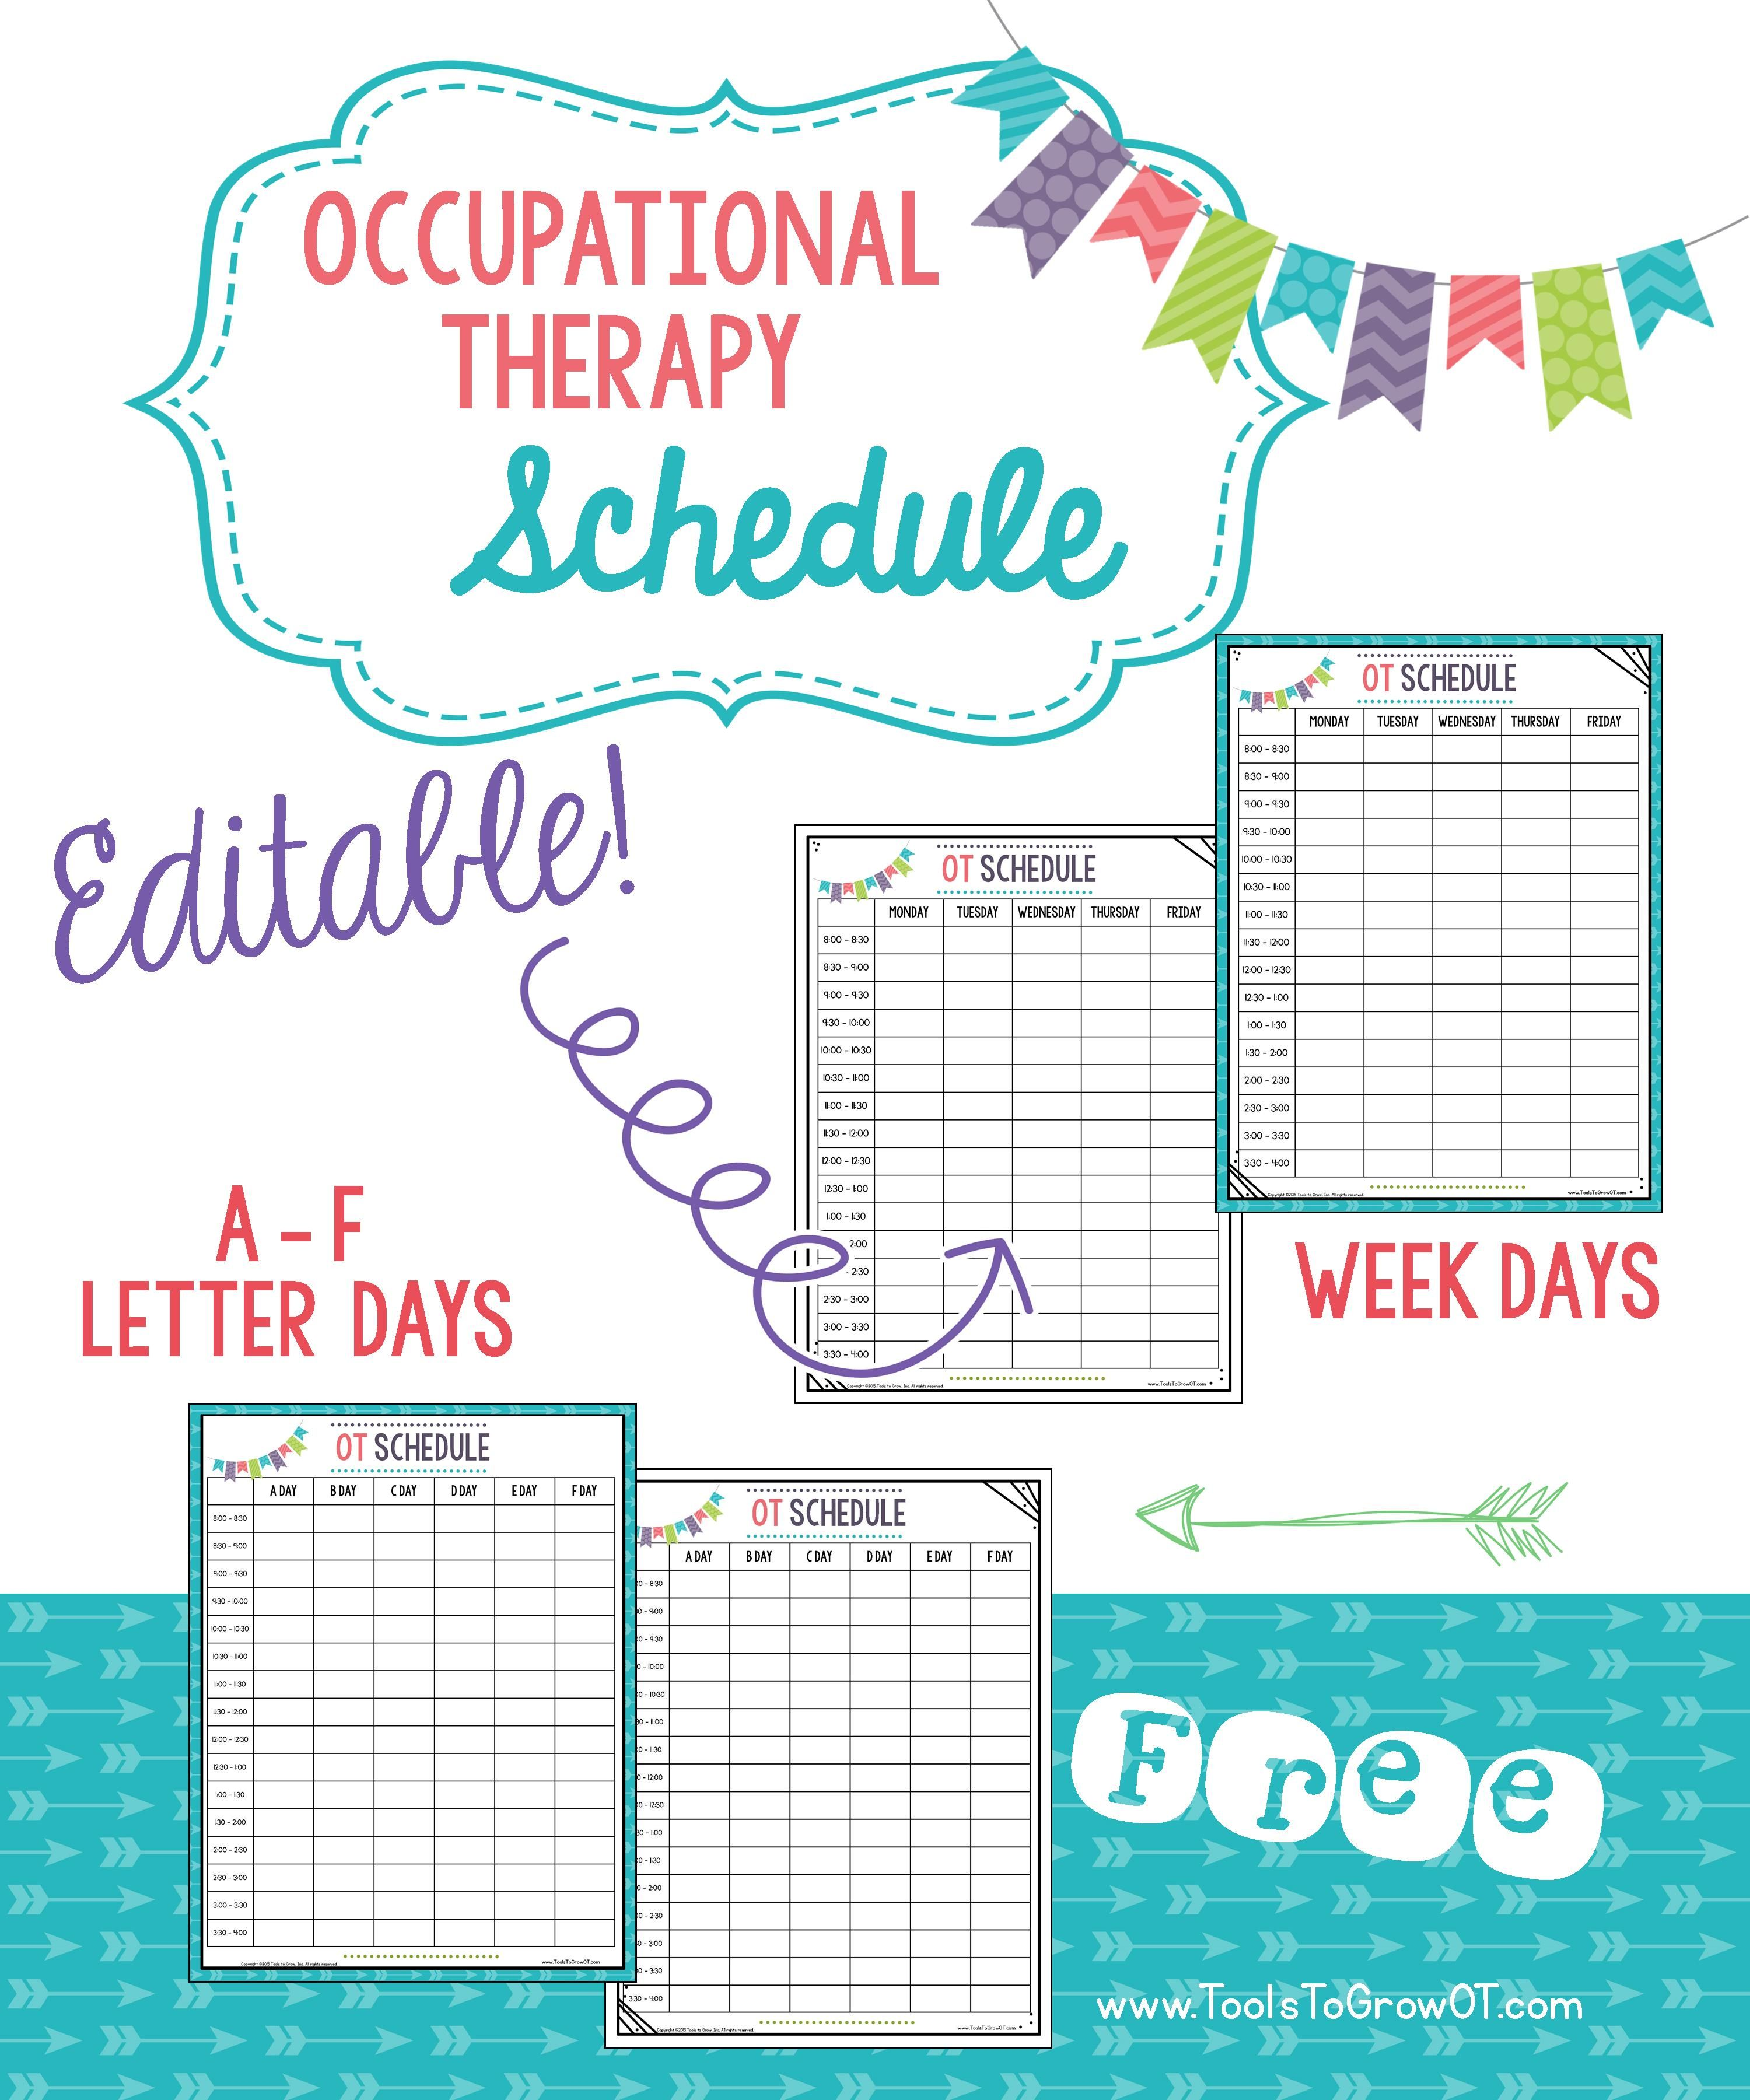 FREE! Daily Schedule - Editable (Week Days & Letter Days Versions). TYPE into forms!